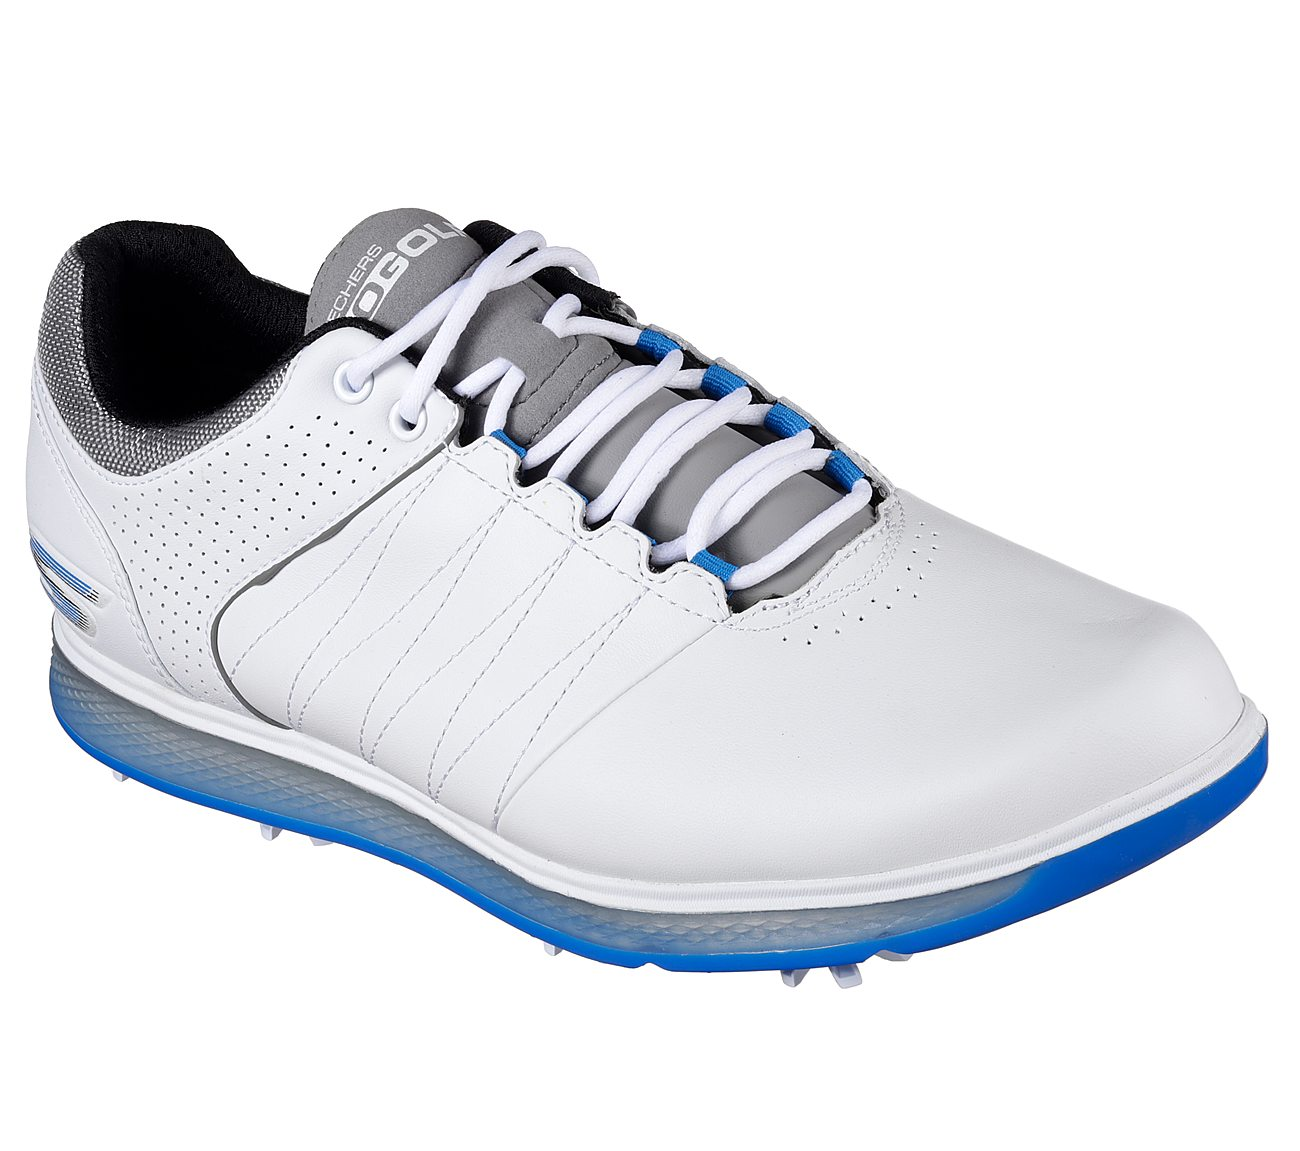 Skechers GO GOLF Pro 2. $70.00. Hover to zoom